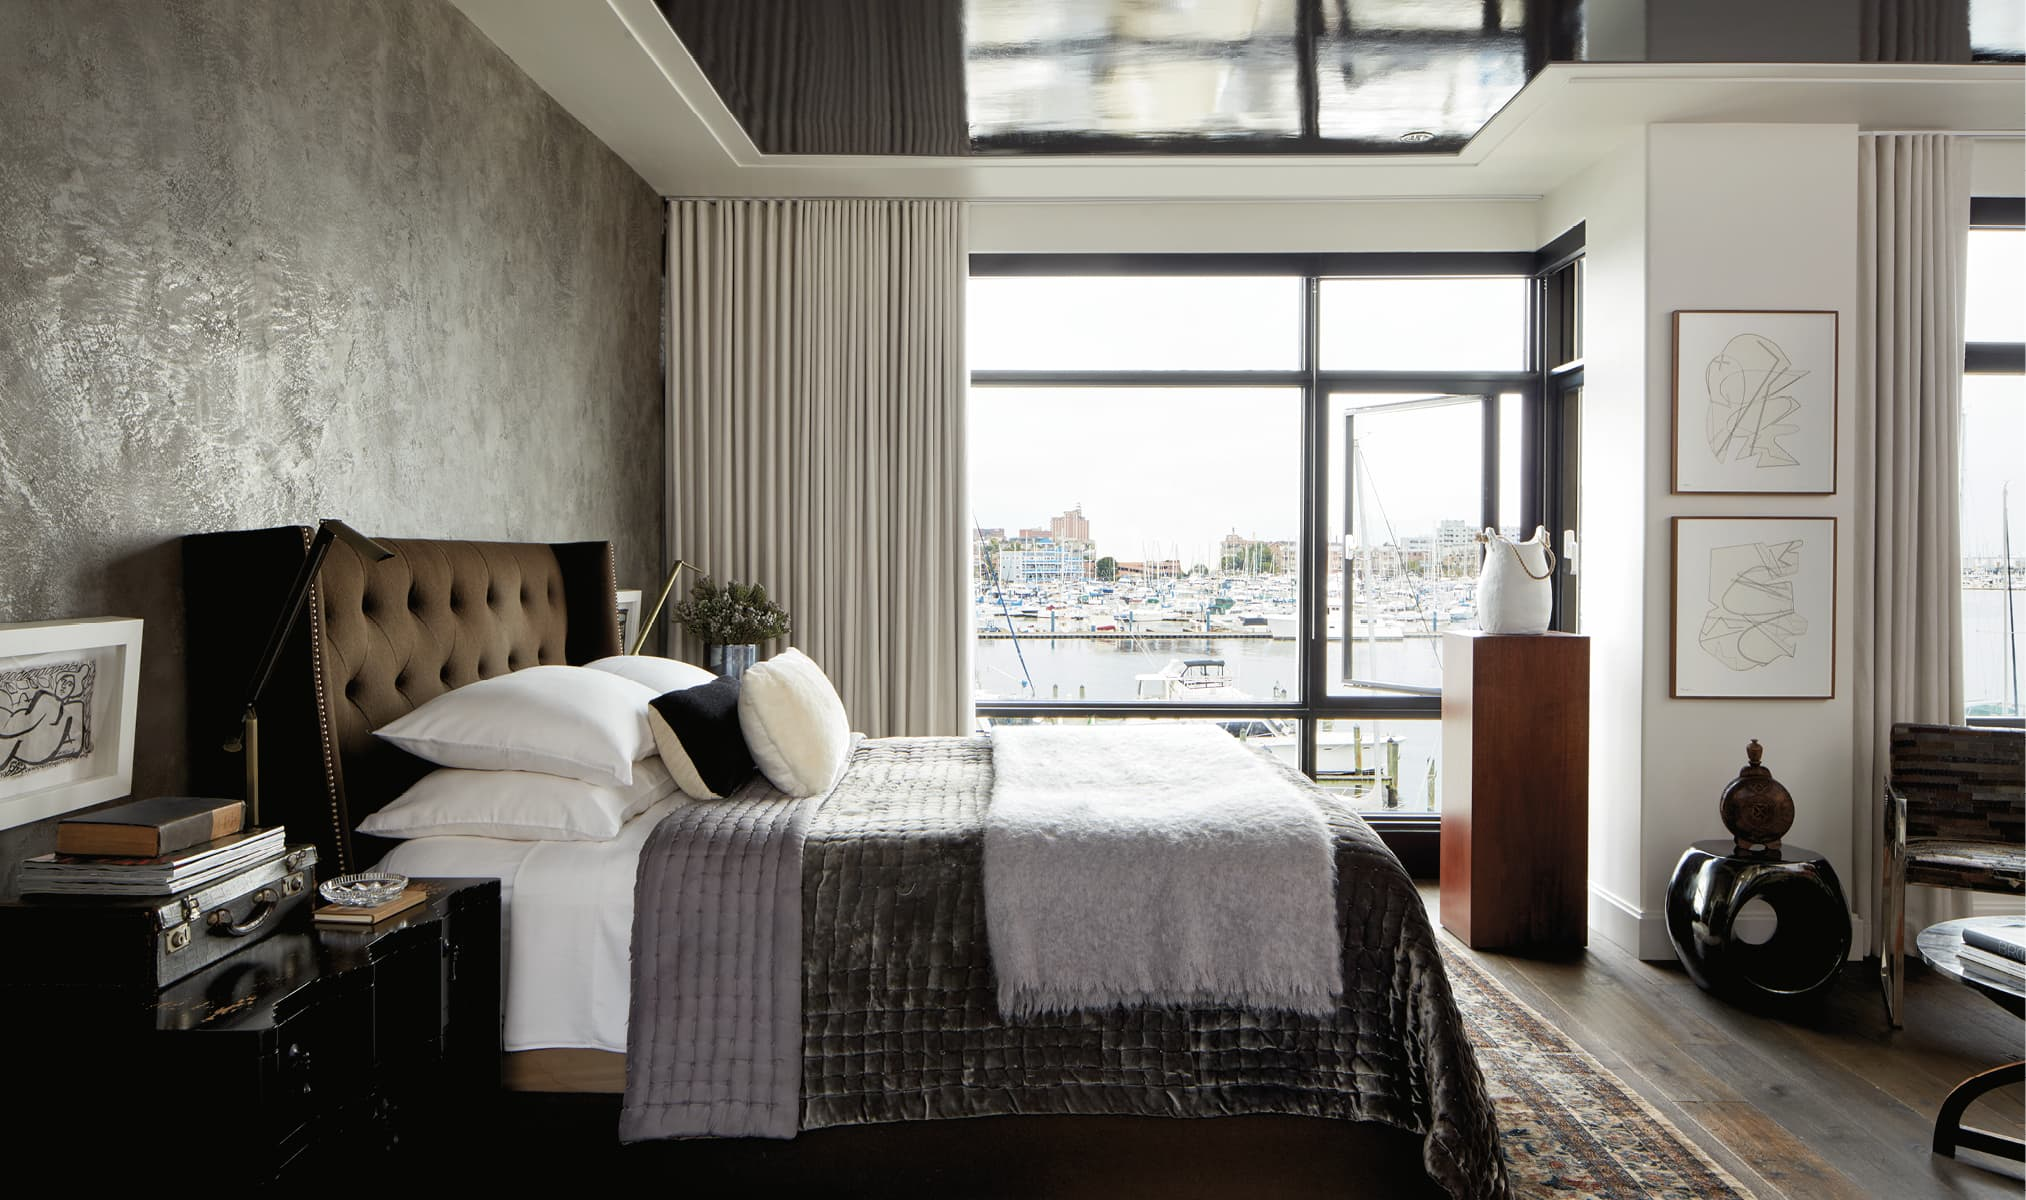 Bedroom looking out over the harbor